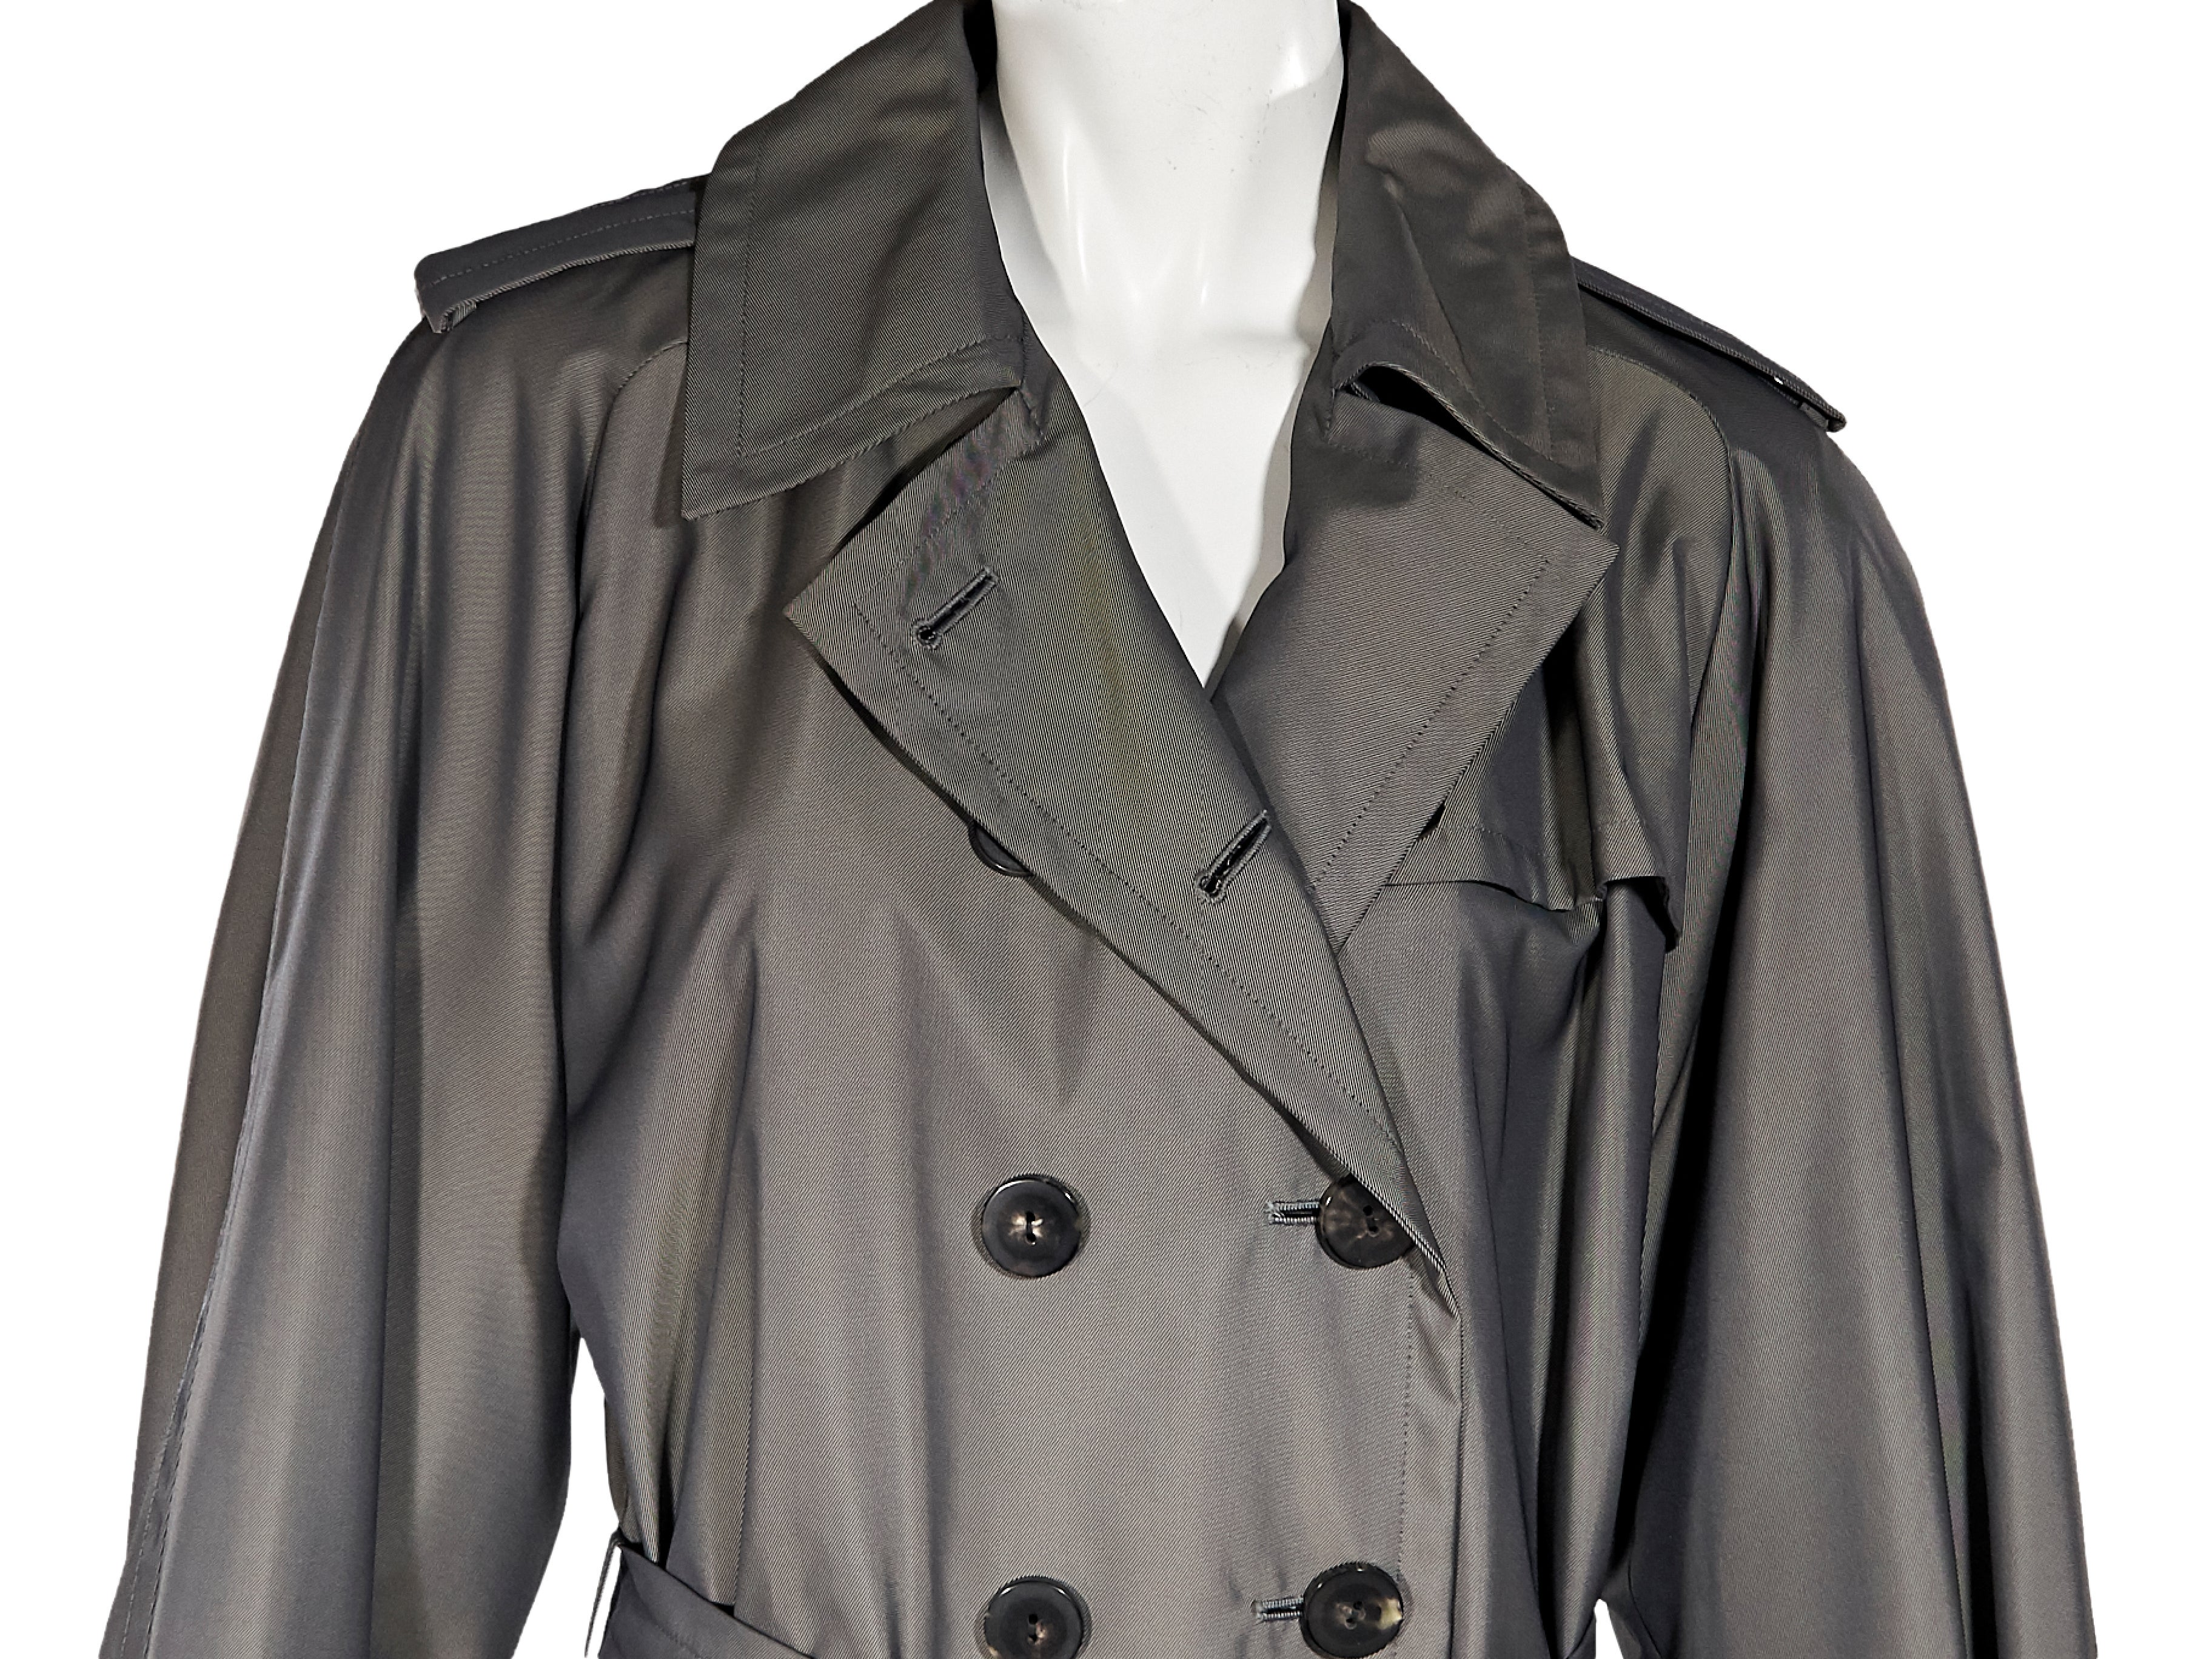 c459a45227a Grey Vintage Yves Saint Laurent Rive Gauche Trench Coat at 1stdibs